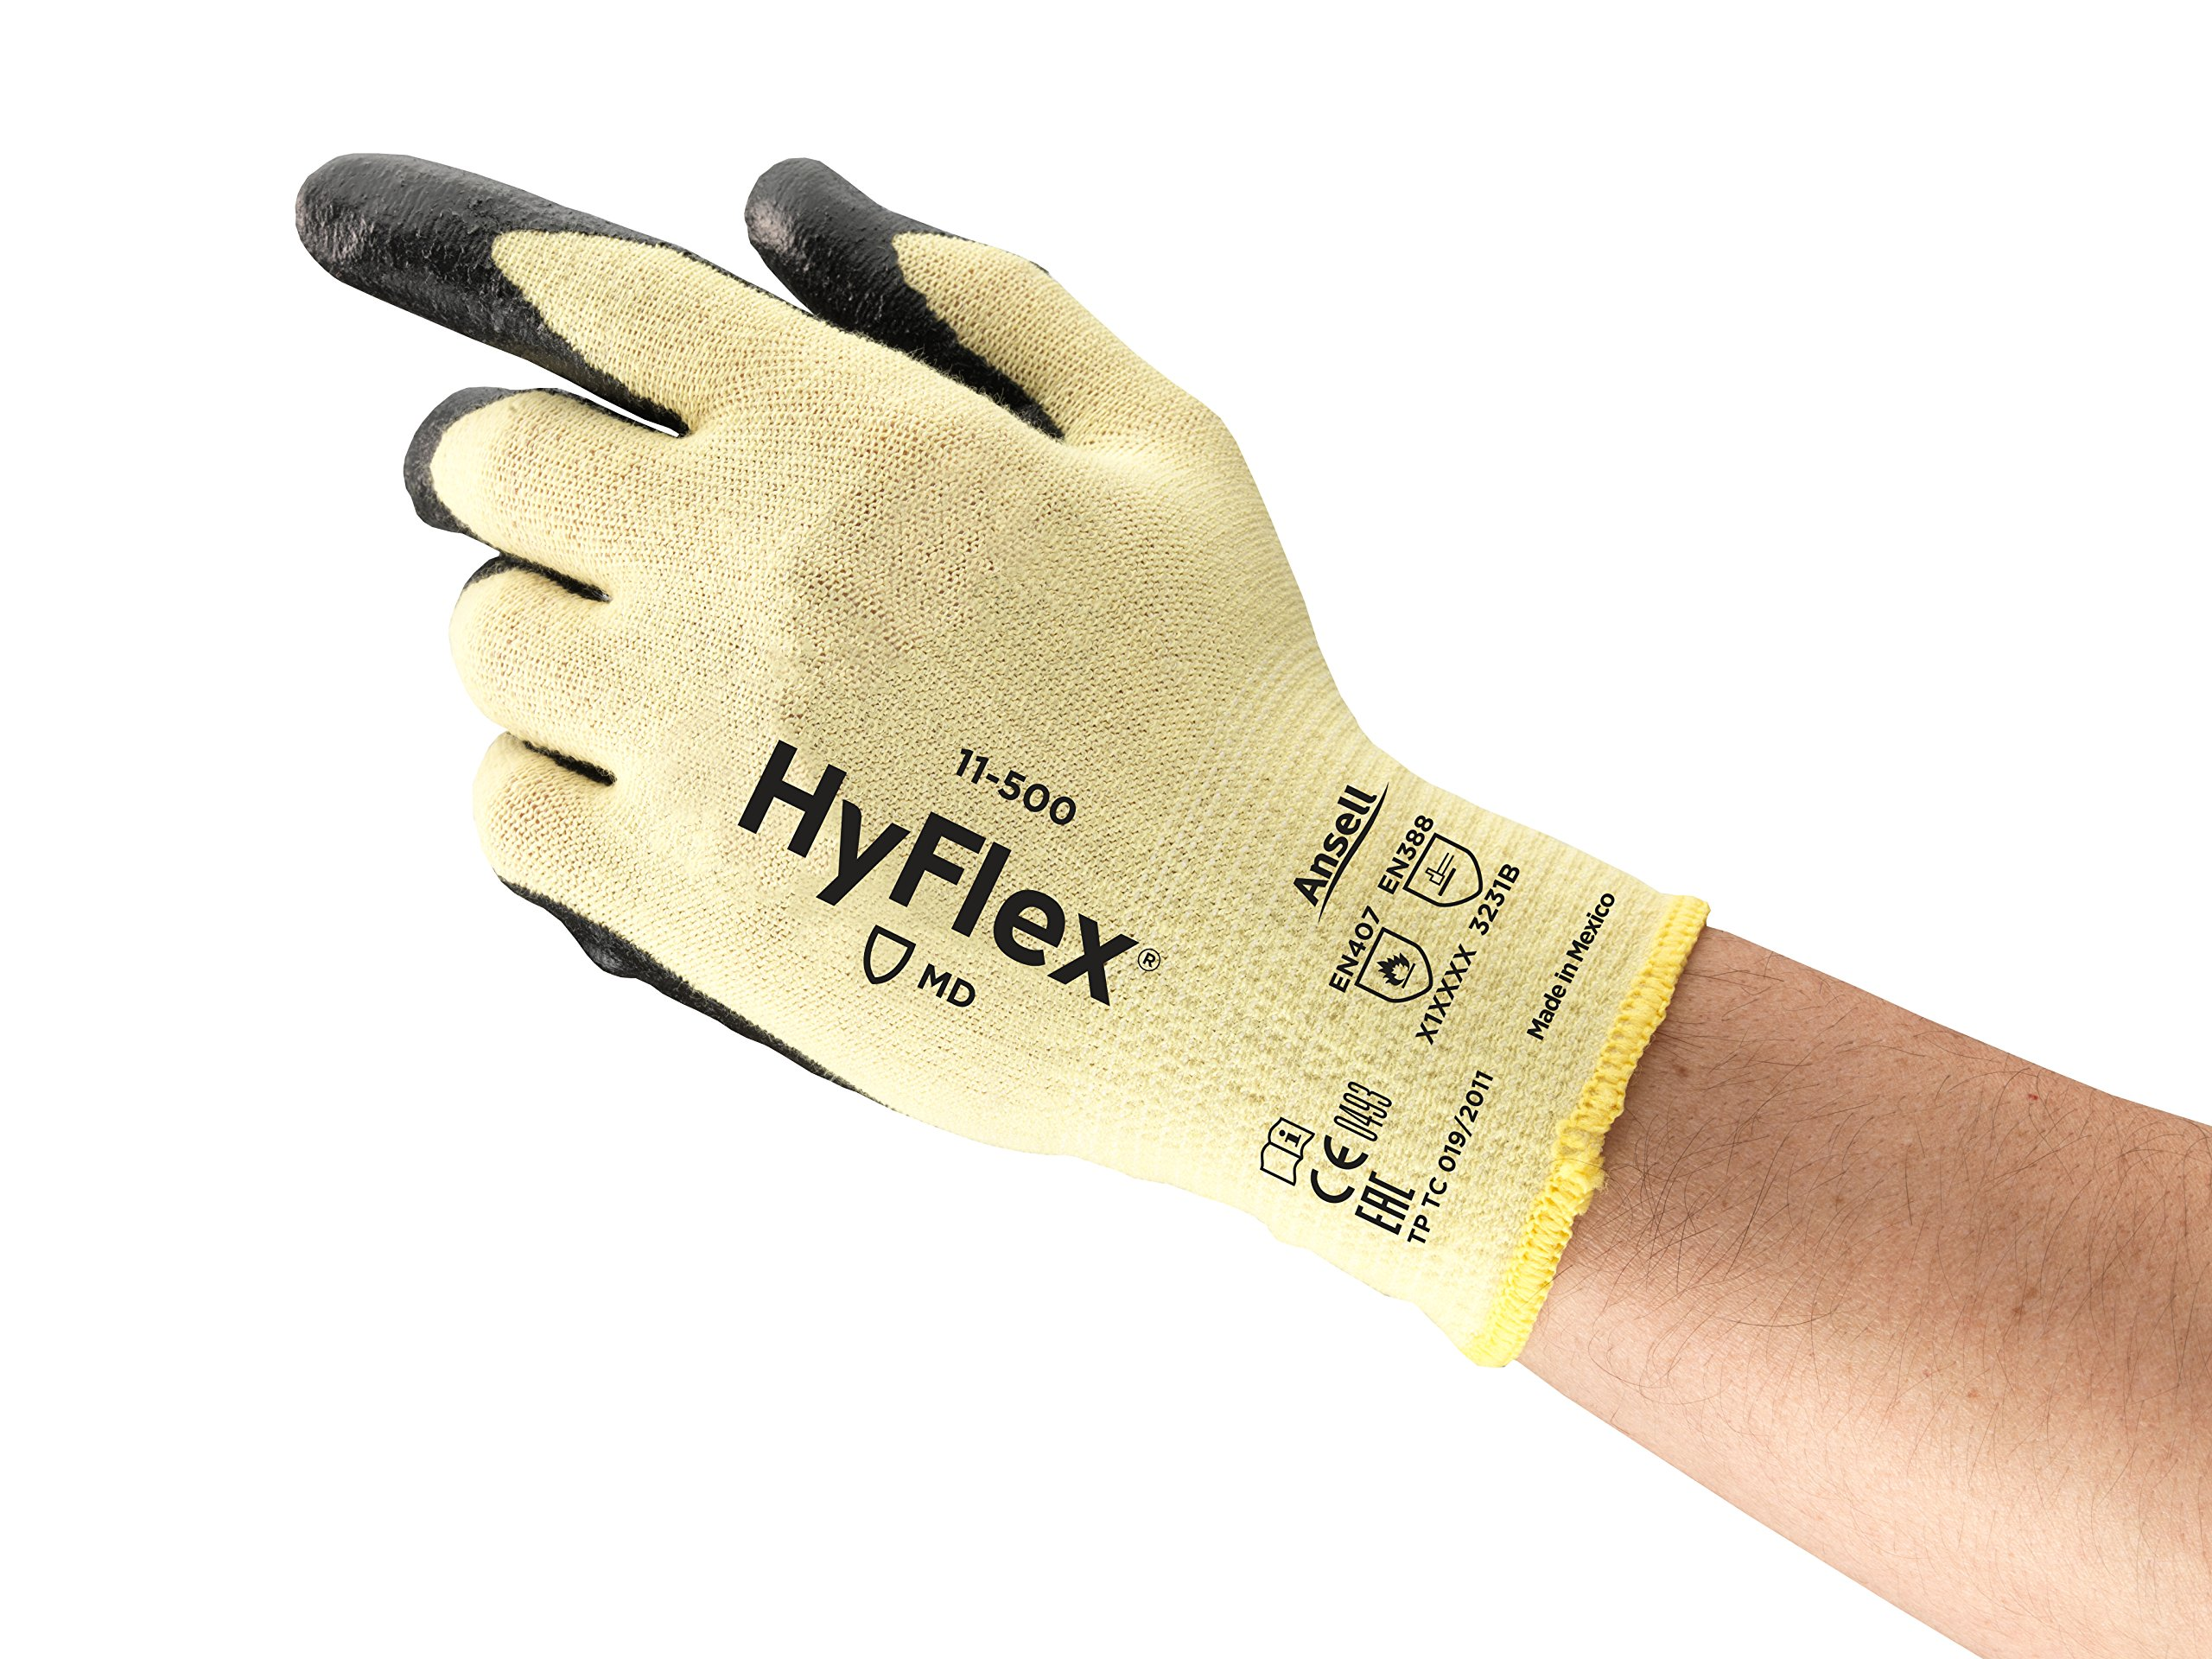 Ansell HyFlex 11-500 Kevlar Glove, Cut Resistant, Black Foam Nitrile Coating, Knit Wrist Cuff, Large, Size 9 (Pack of 12)